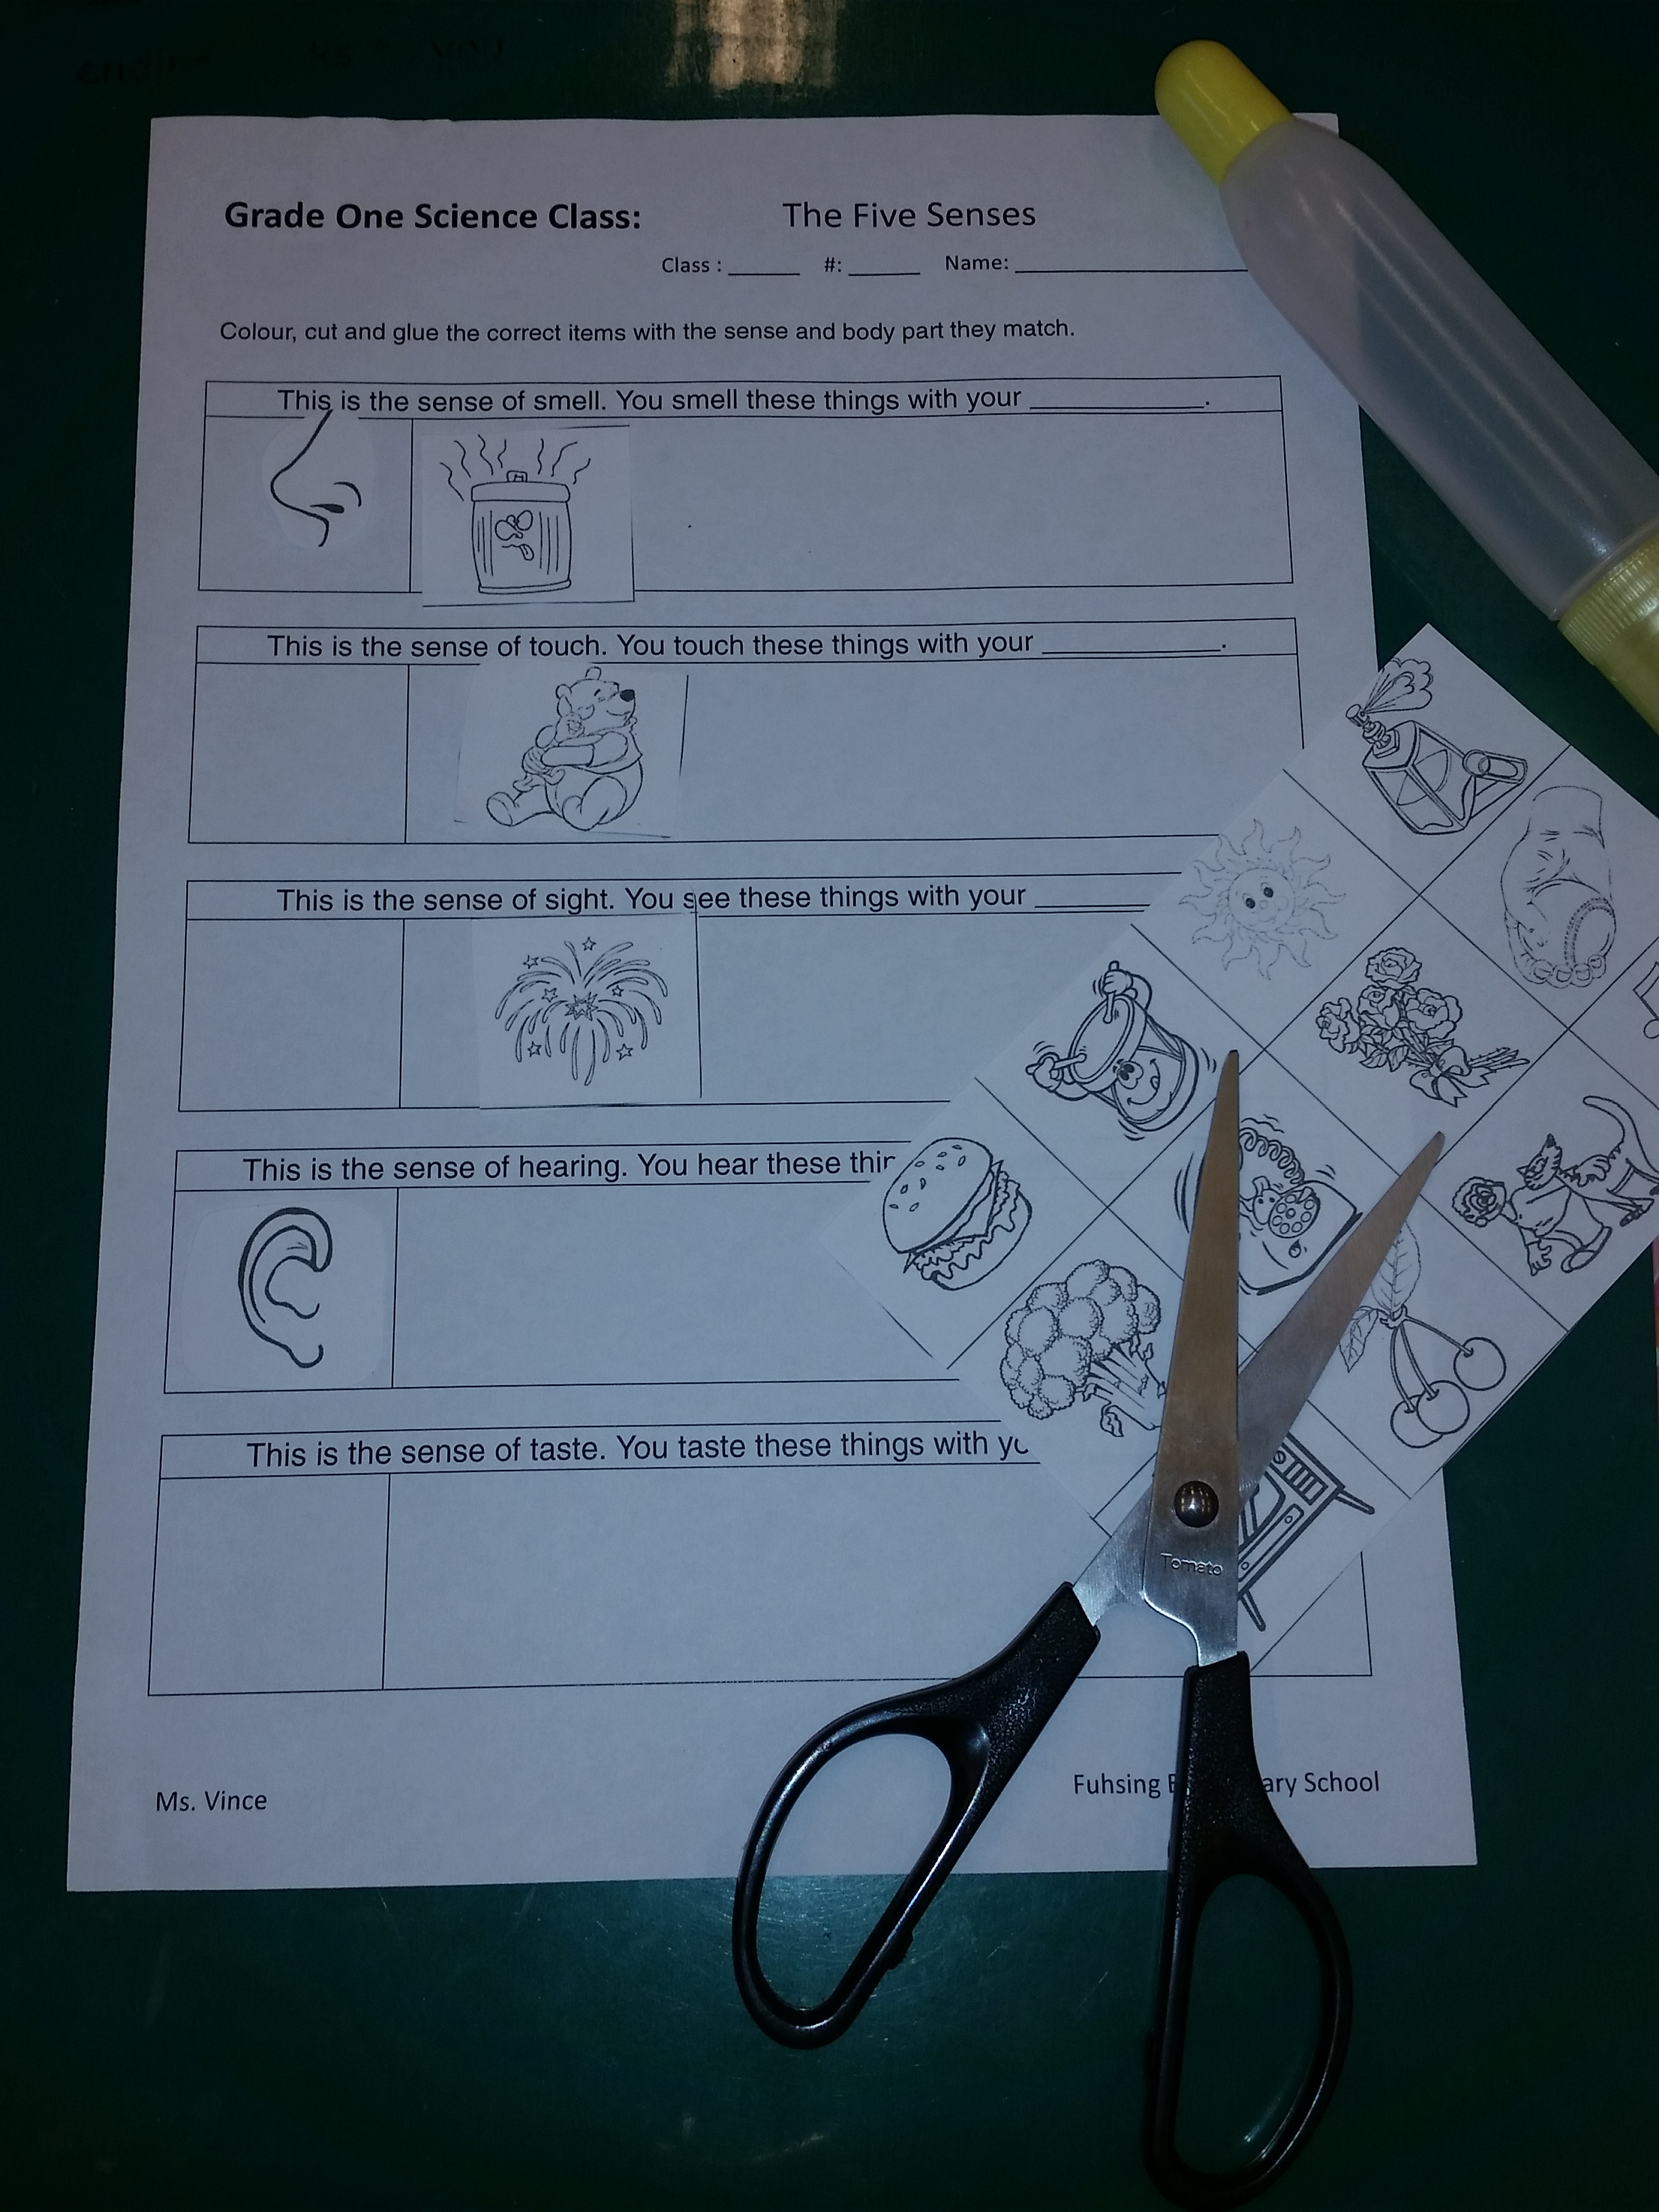 Worksheets Page 2 Grade One Science